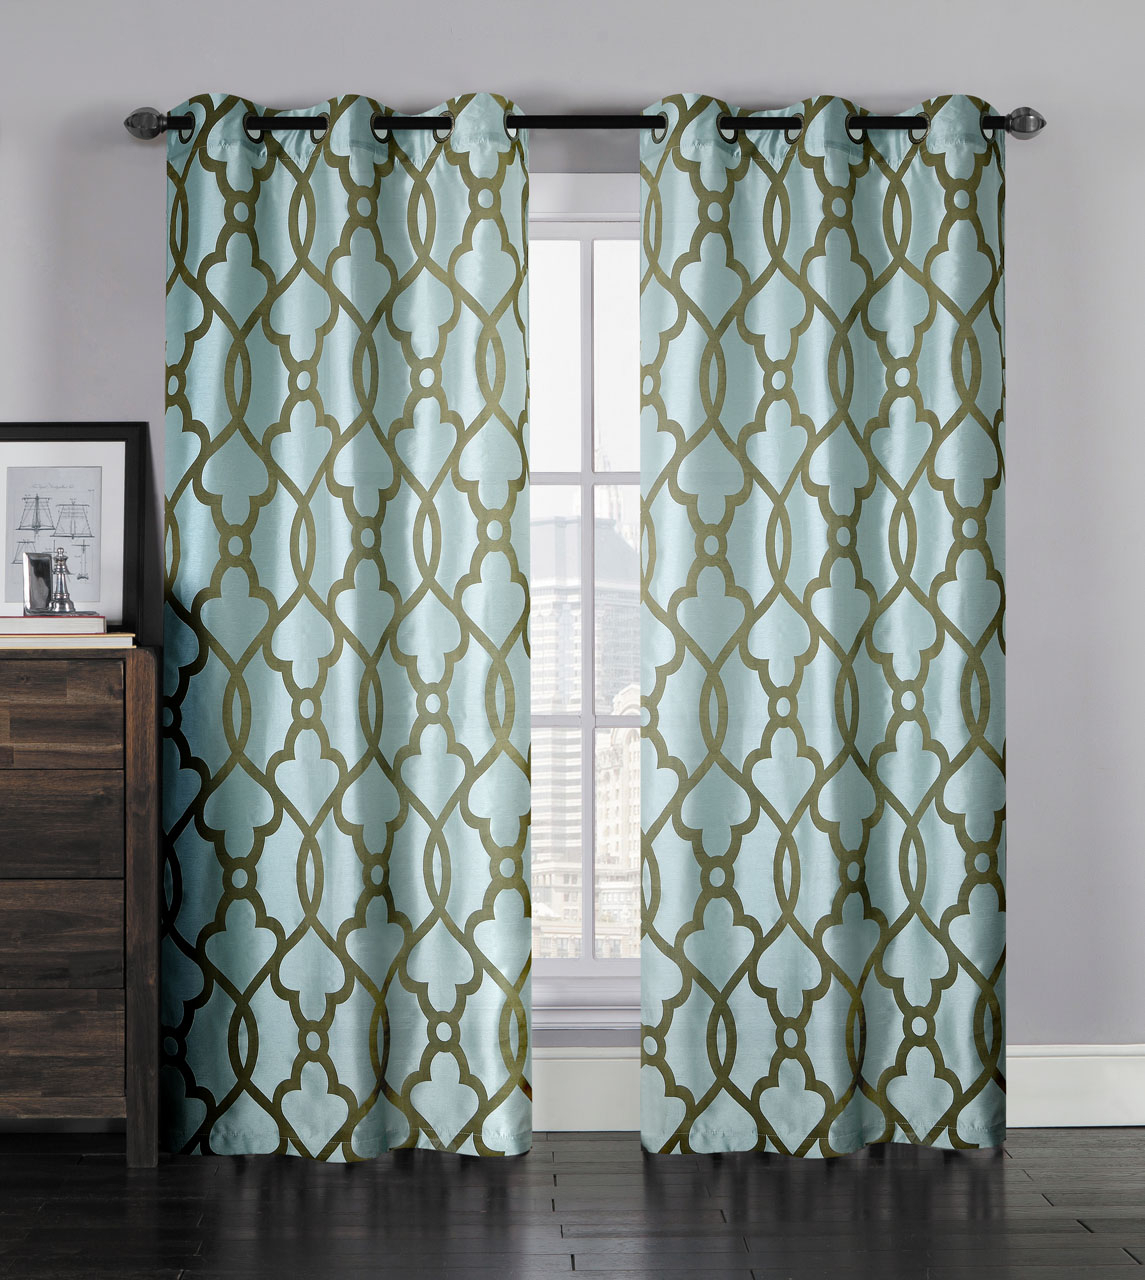 Pair Of Aleah Spa Blue Window Curtain Panels W/grommets Inside Ocean Striped Window Curtain Panel Pairs With Grommet Top (View 19 of 20)